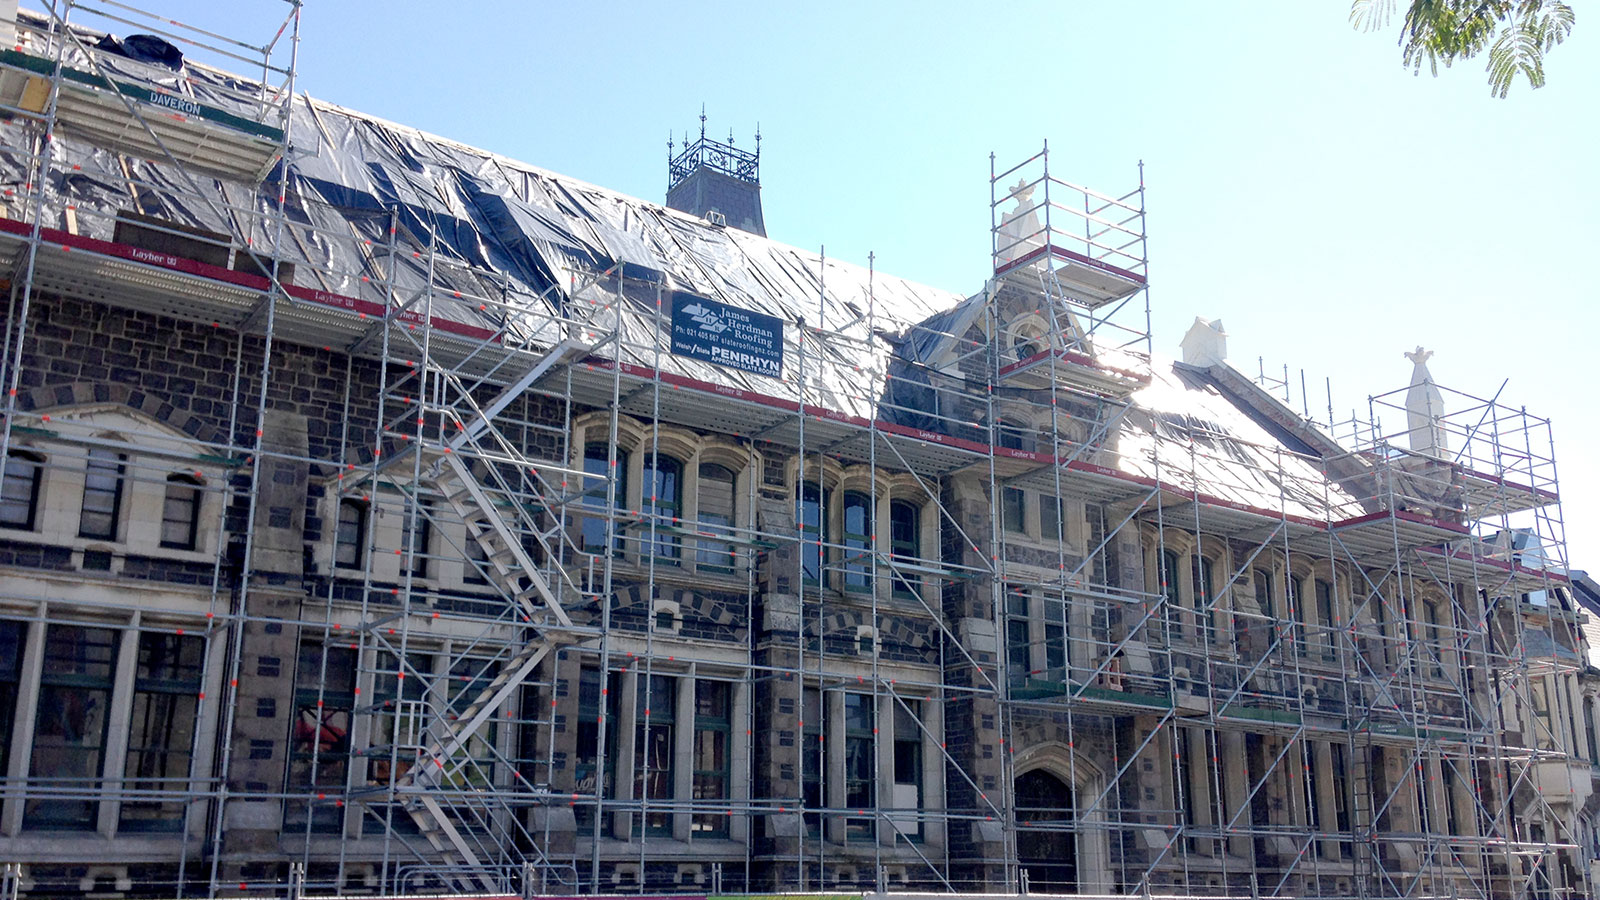 The Arts Centre of Christchurch rebuild and restoration project with the help of Layher Scaffolding